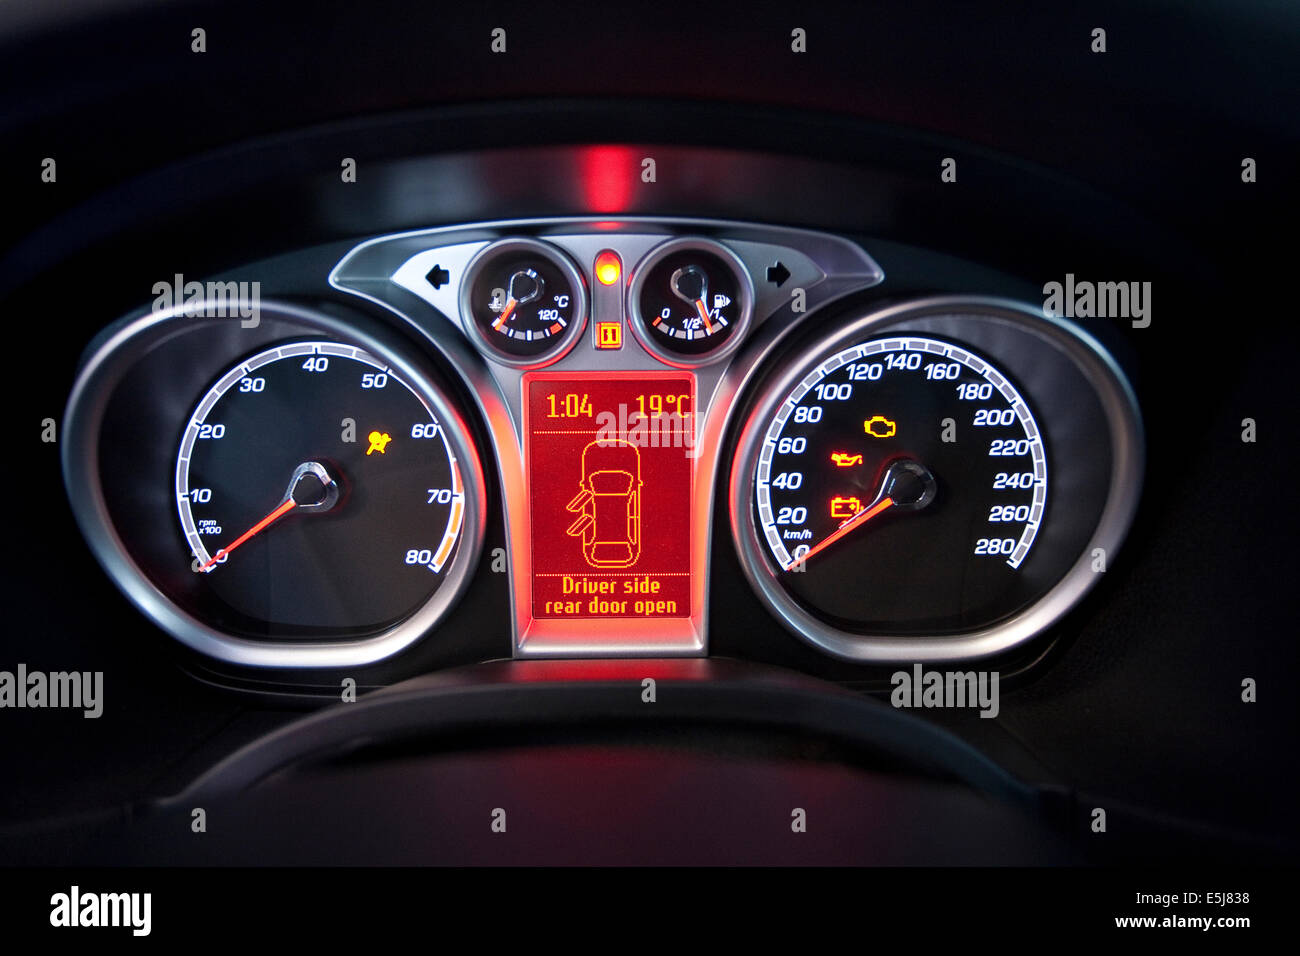 Dashboard Of A 2007 Ford Focus Stock Photo 72316252 Alamy